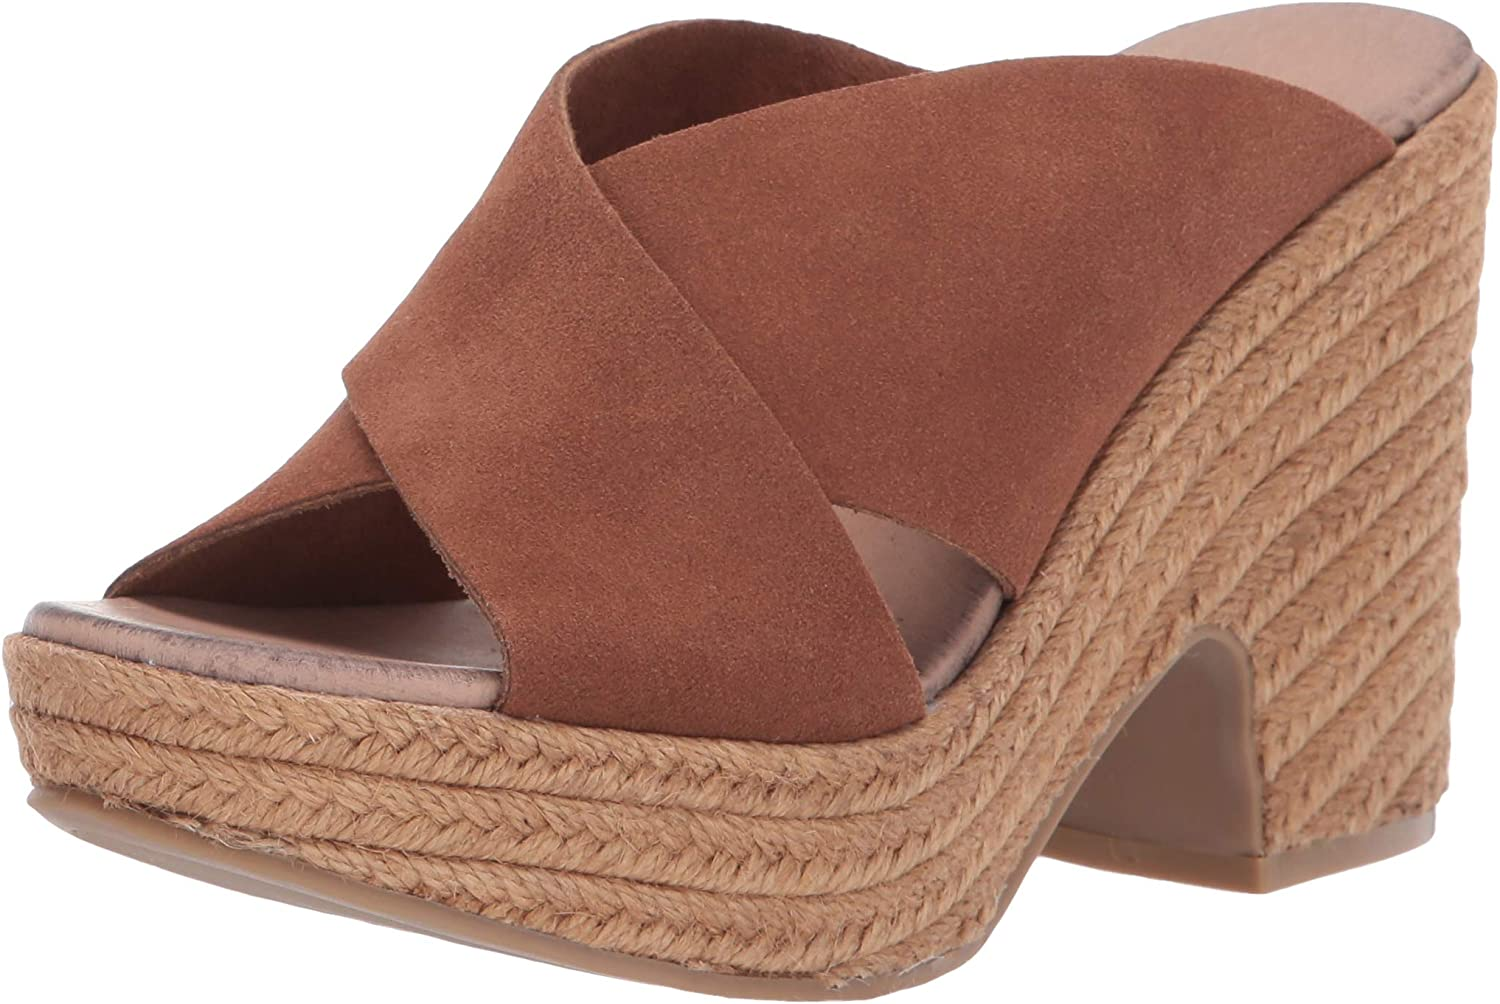 Chinese Laundry Seasonal Wrap Introduction Women's Max 57% OFF Quay Sandal Wedge Espadrille